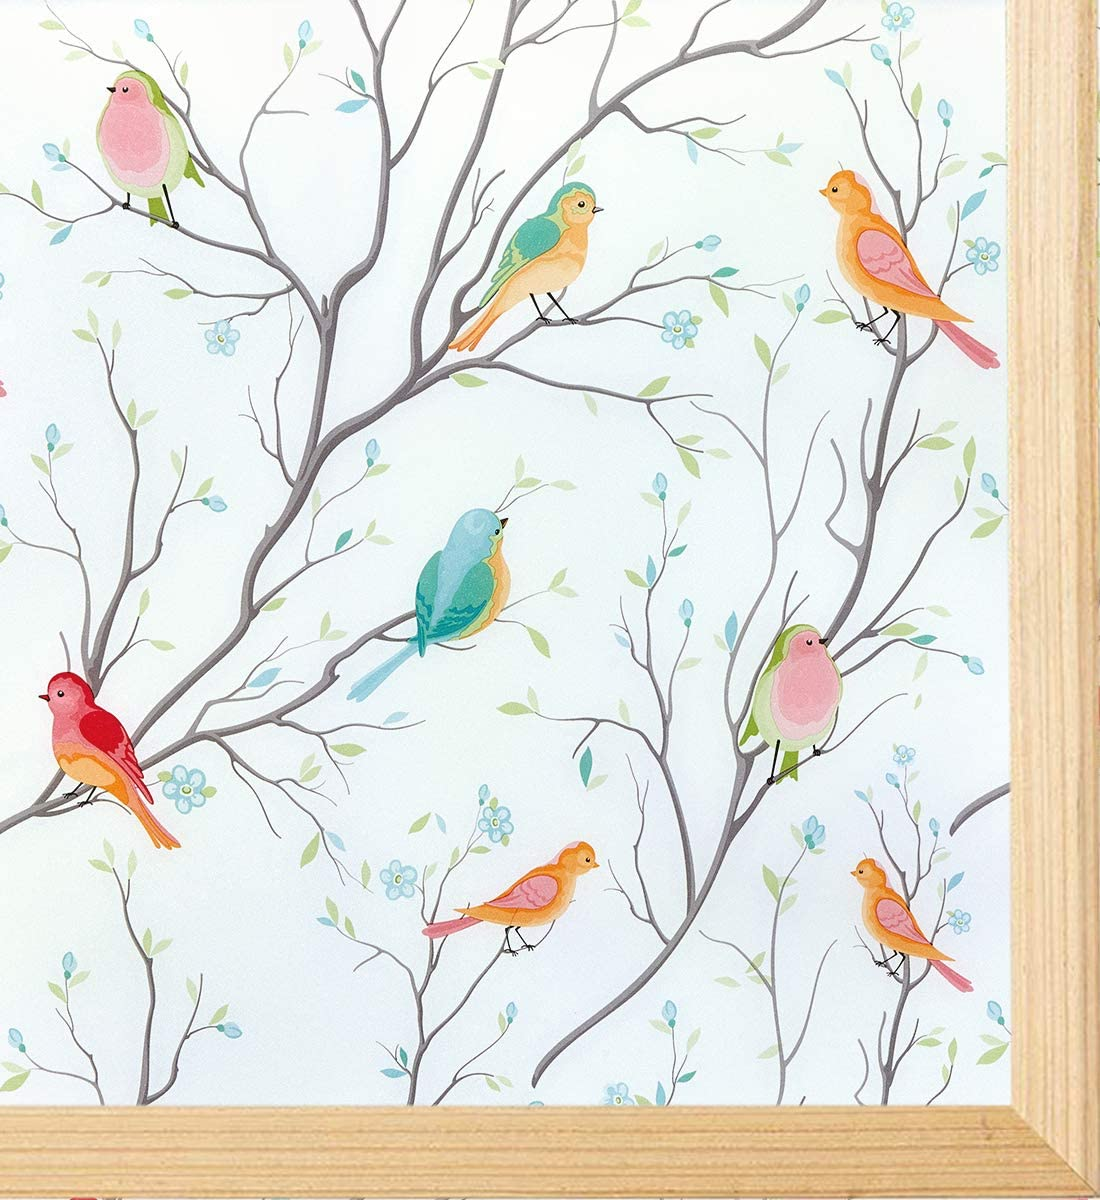 Coavas Window Film Birds Privacy Non-Adhesive Frosted Decorative Window Cling for Glass Anti UV Static Cling Opaque for Home Bathroom Shower Kitchen Rental Room Office 17.7 x 78.7 Inches